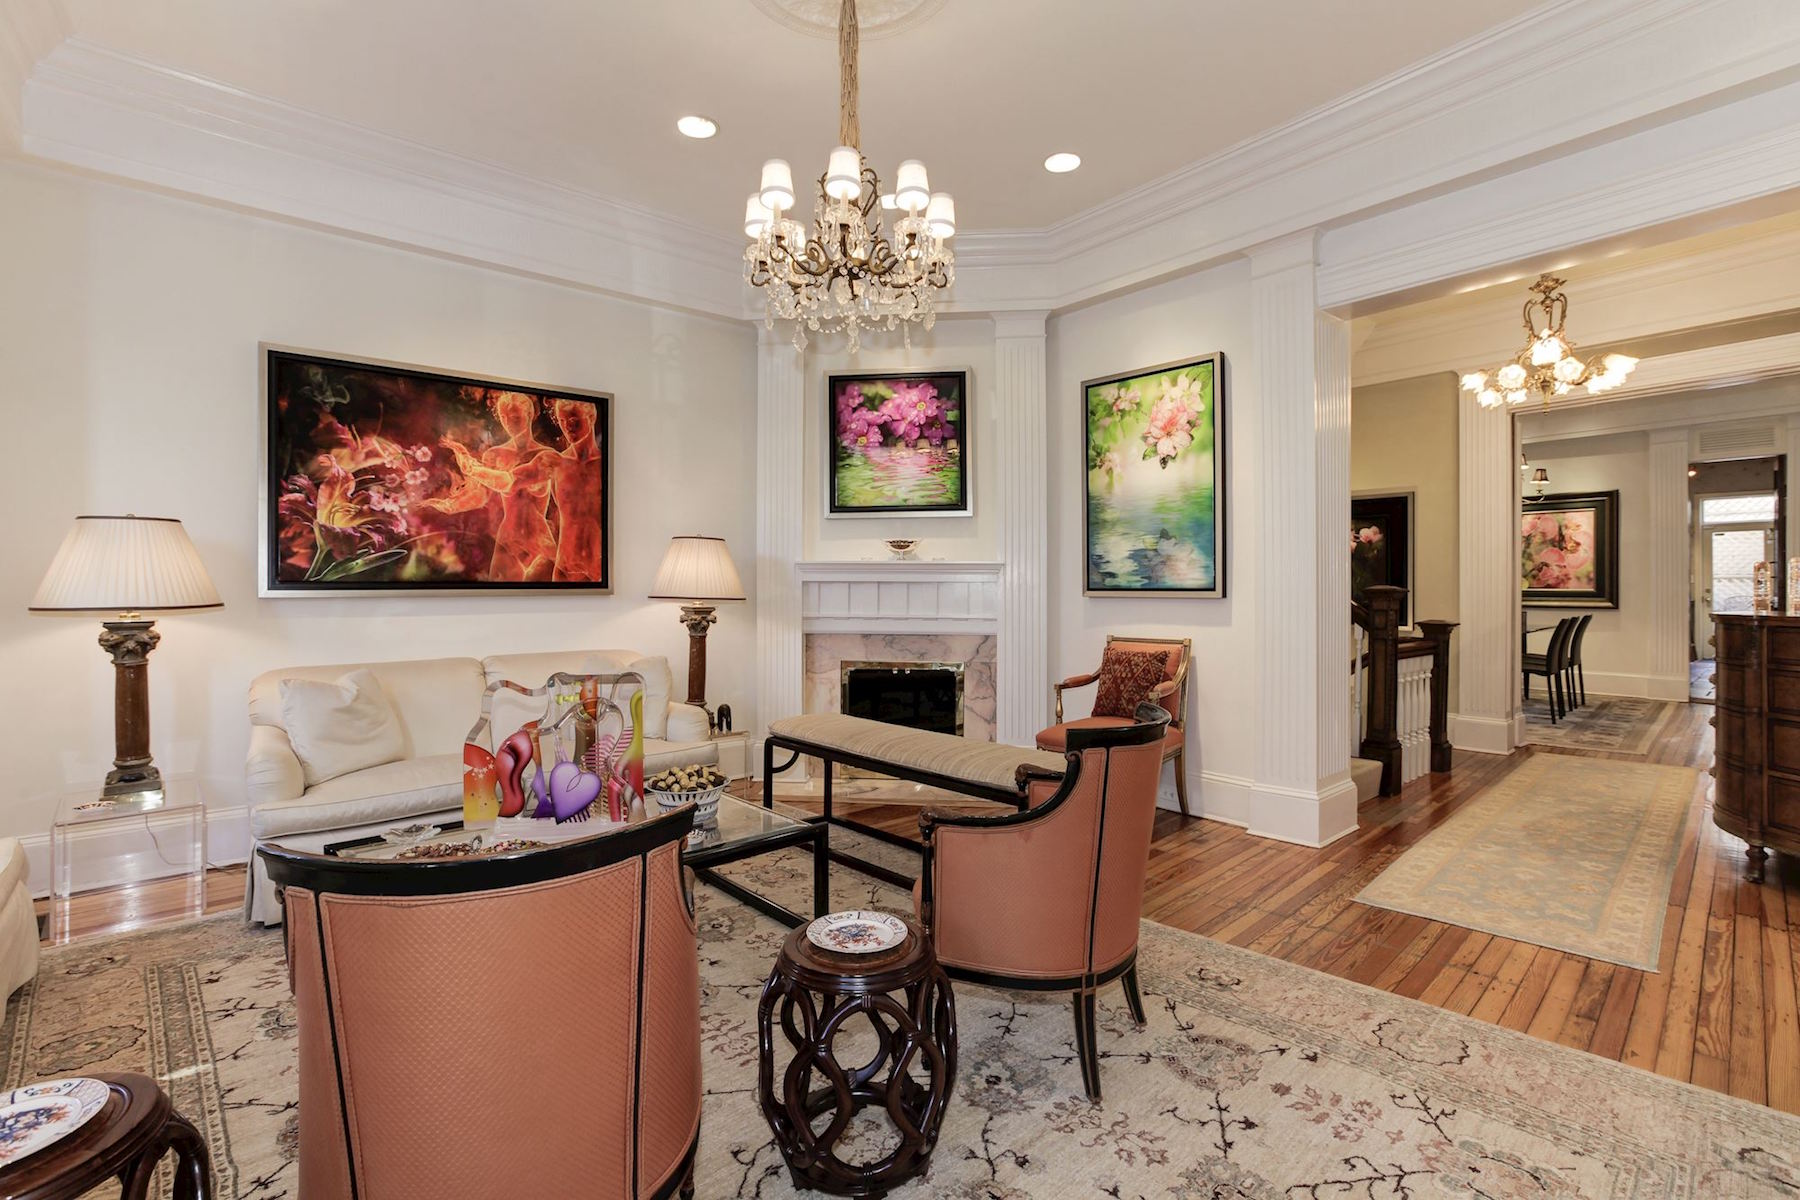 Townhouse for Sale at Kalorama 1827 Phelps Place Nw Kalorama, Washington, District Of Columbia, 20008 United States